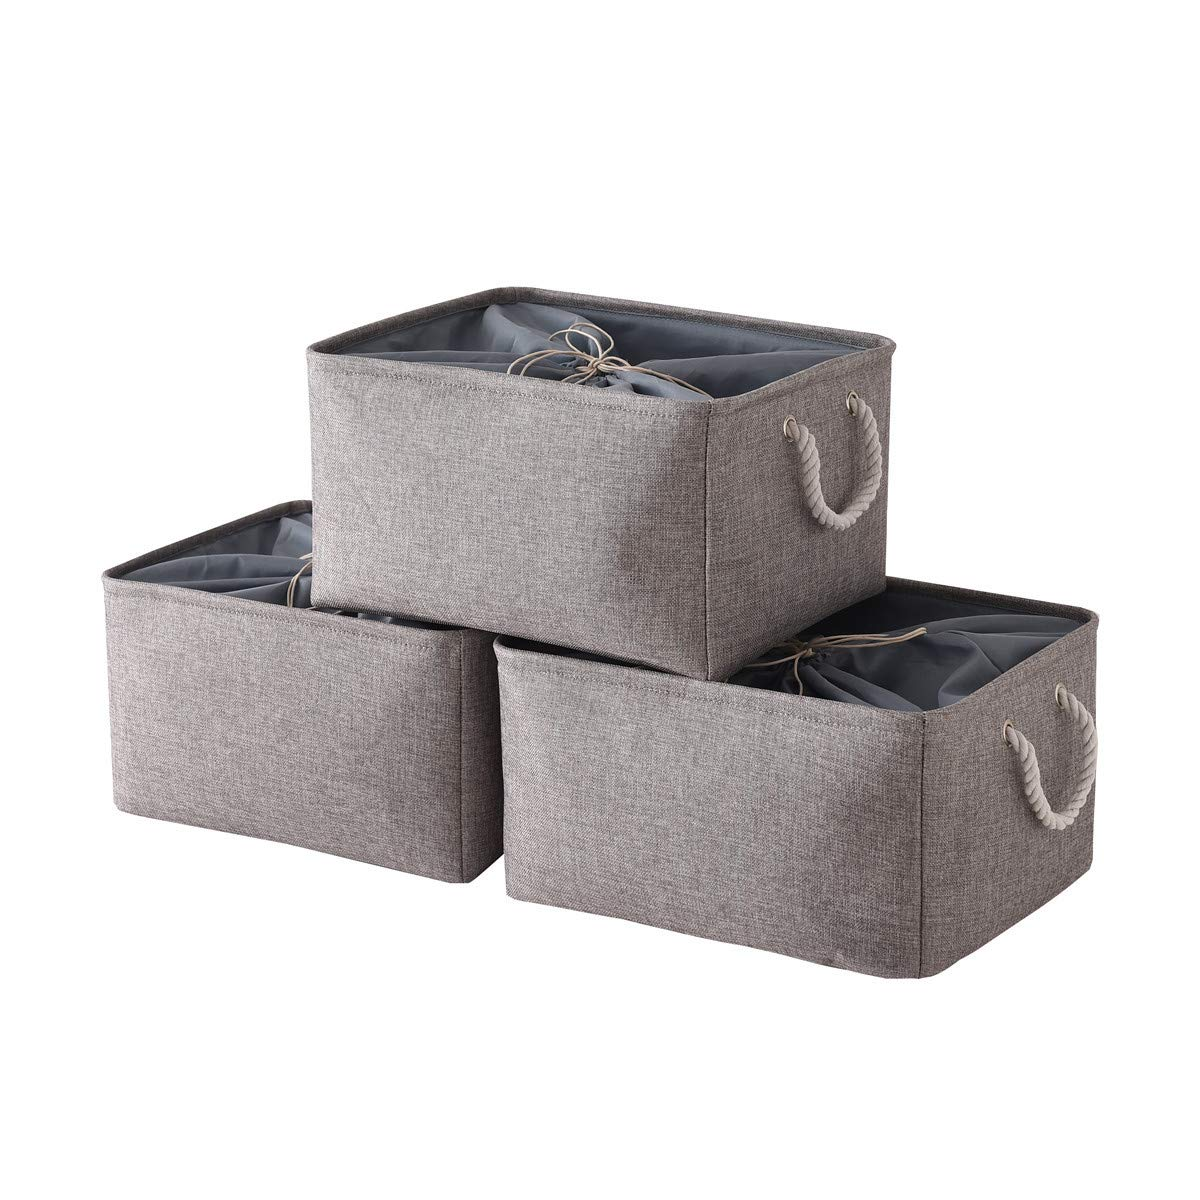 TheWarmHome Jumbo Basket Foldable Storage Basket with Strong Cotton Rope Handle, Collapsible Storage Bins Set Works As Baby Storage, Toy Storage, Nursery Baskets (Grey, 3Pack-20.5L15.7W13.8H)